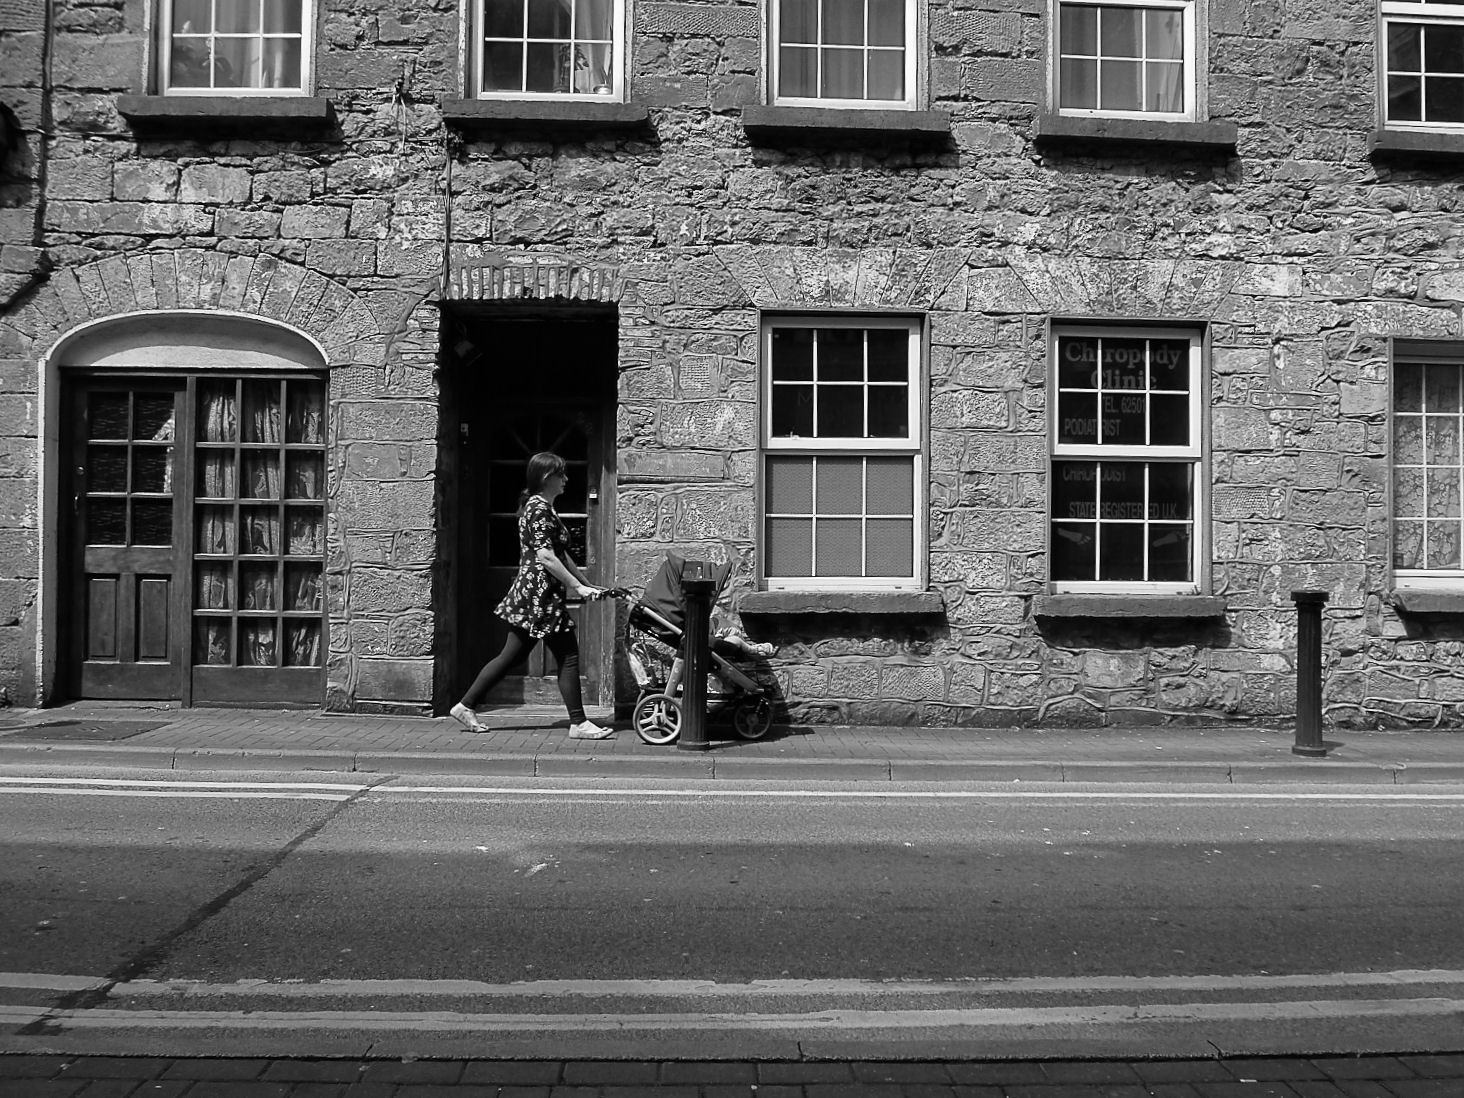 Photograph Streetscene, Galway city by Mark Chaddock on 500px